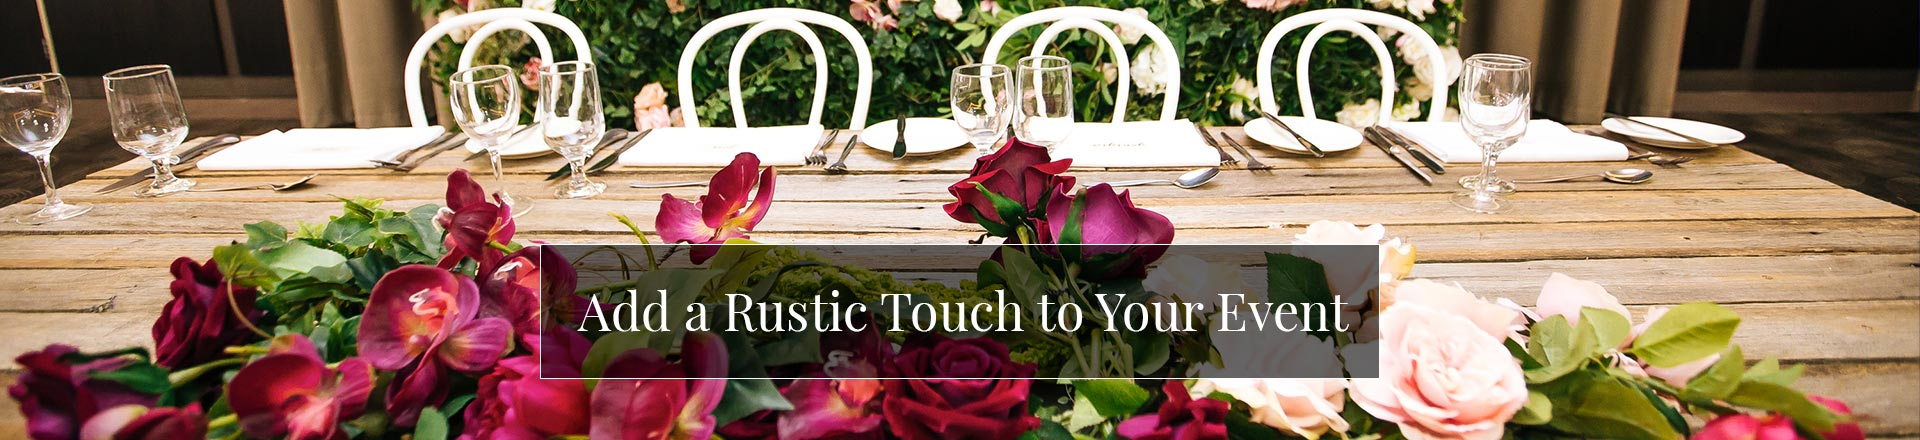 Add a Rustic Touch to Your Event